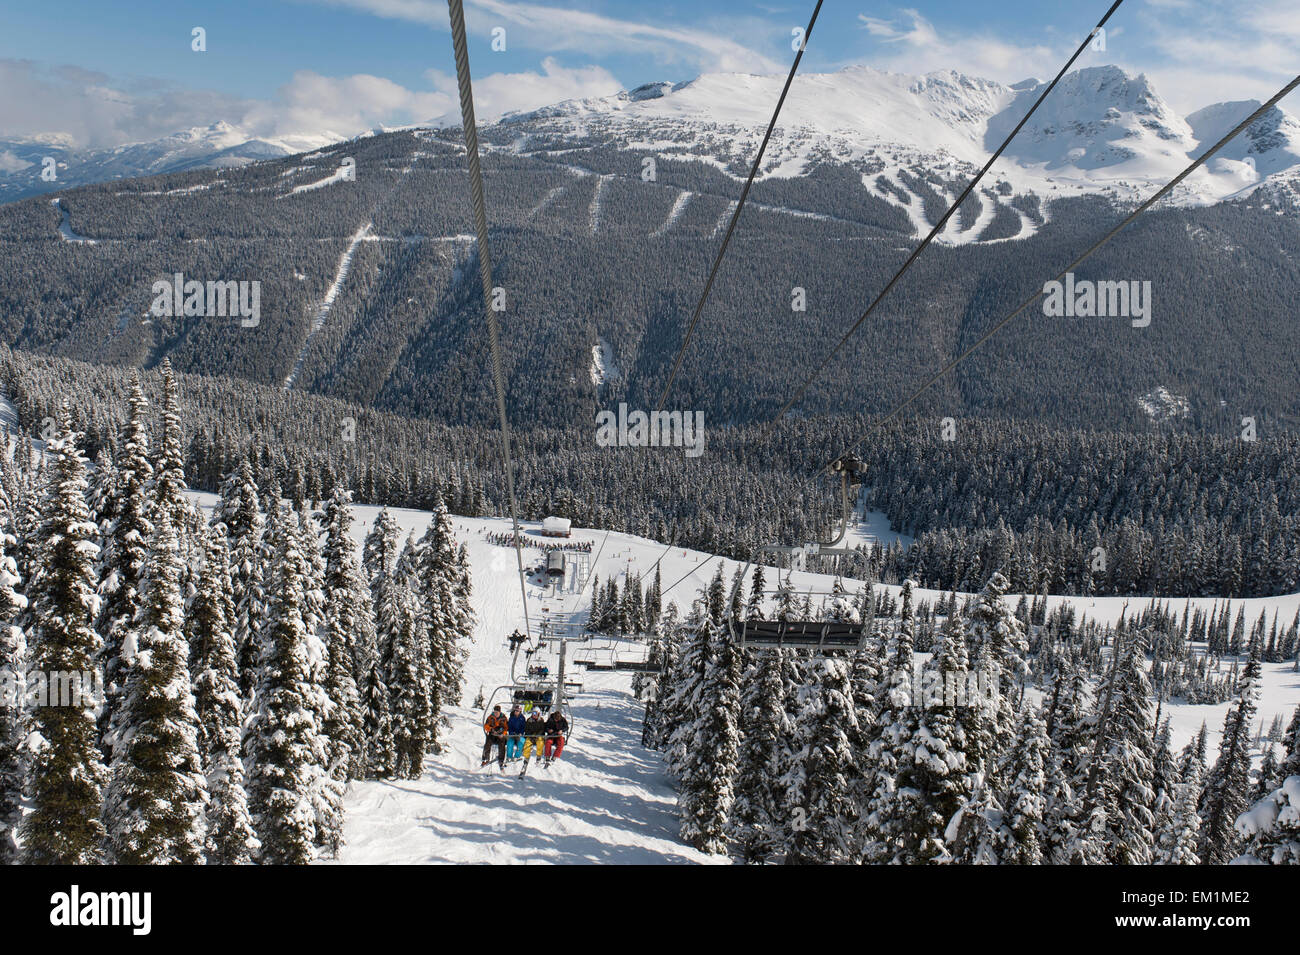 Skiers Riding A Chairlift At A Ski Resort; Whistler British Columbia Canada - Stock Image